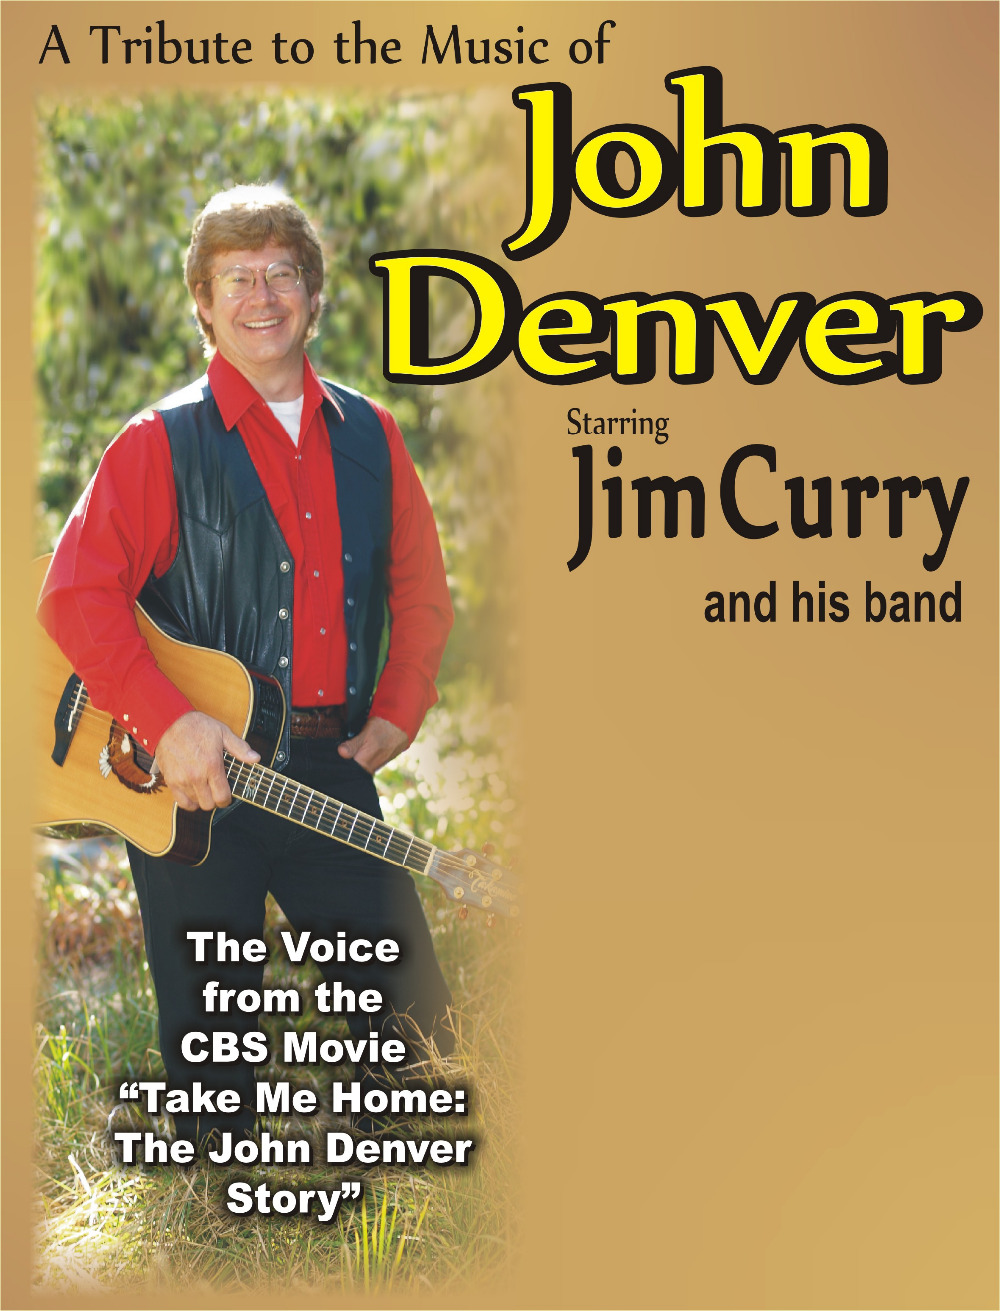 John Denver Jim Curry Music Class Propaganda Vintage Kraft Decorative Poster DIY Wall Sticker Delicate Home Bar Decor Gift(China (Mainland))